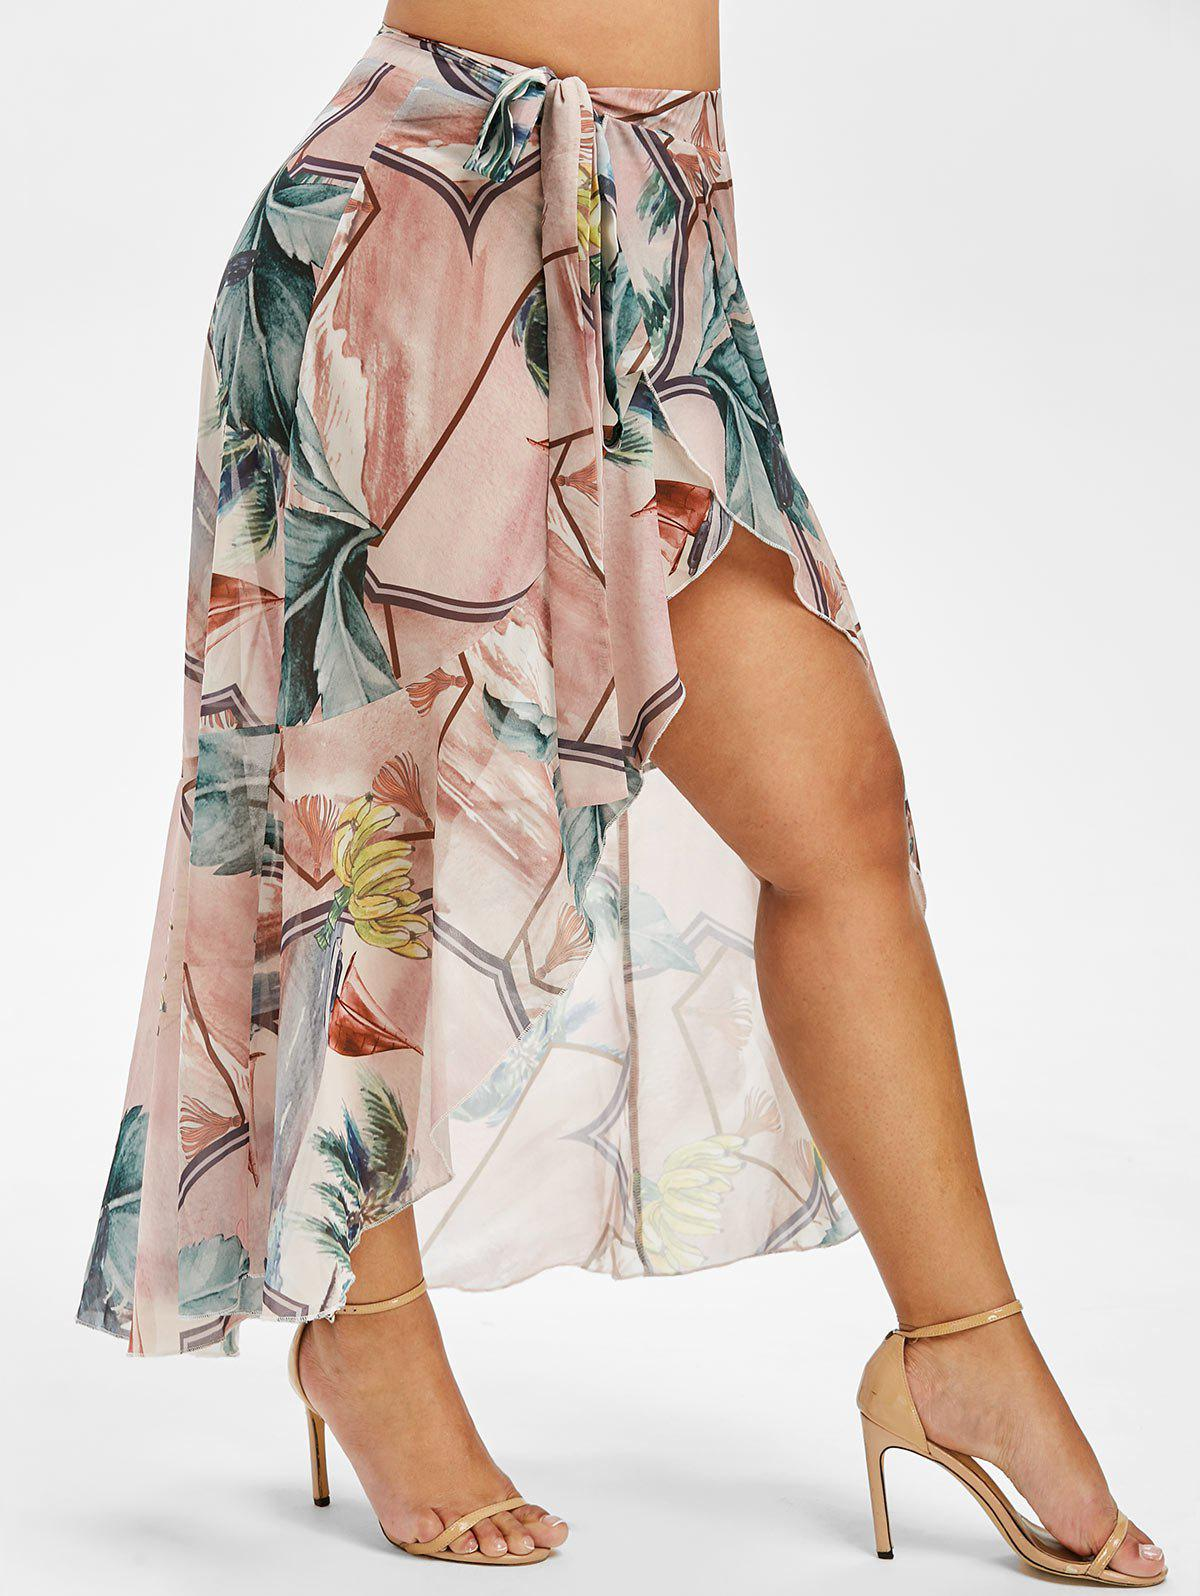 Leaves Bananas Print Plus Size Swim Wrap Skirt